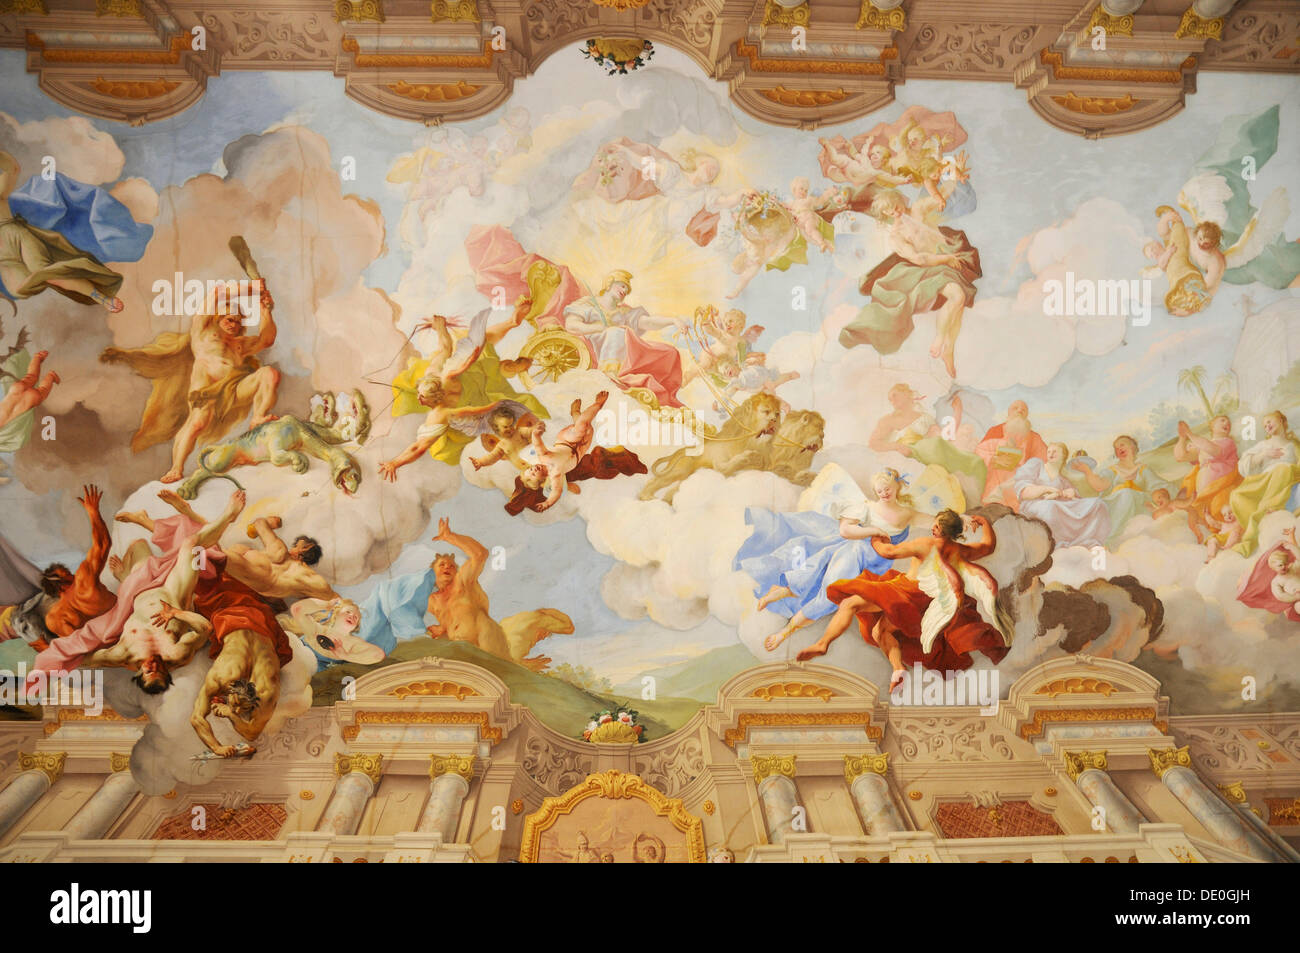 Ceiling painting in the Marble Hall, Melk Abbey or Stift